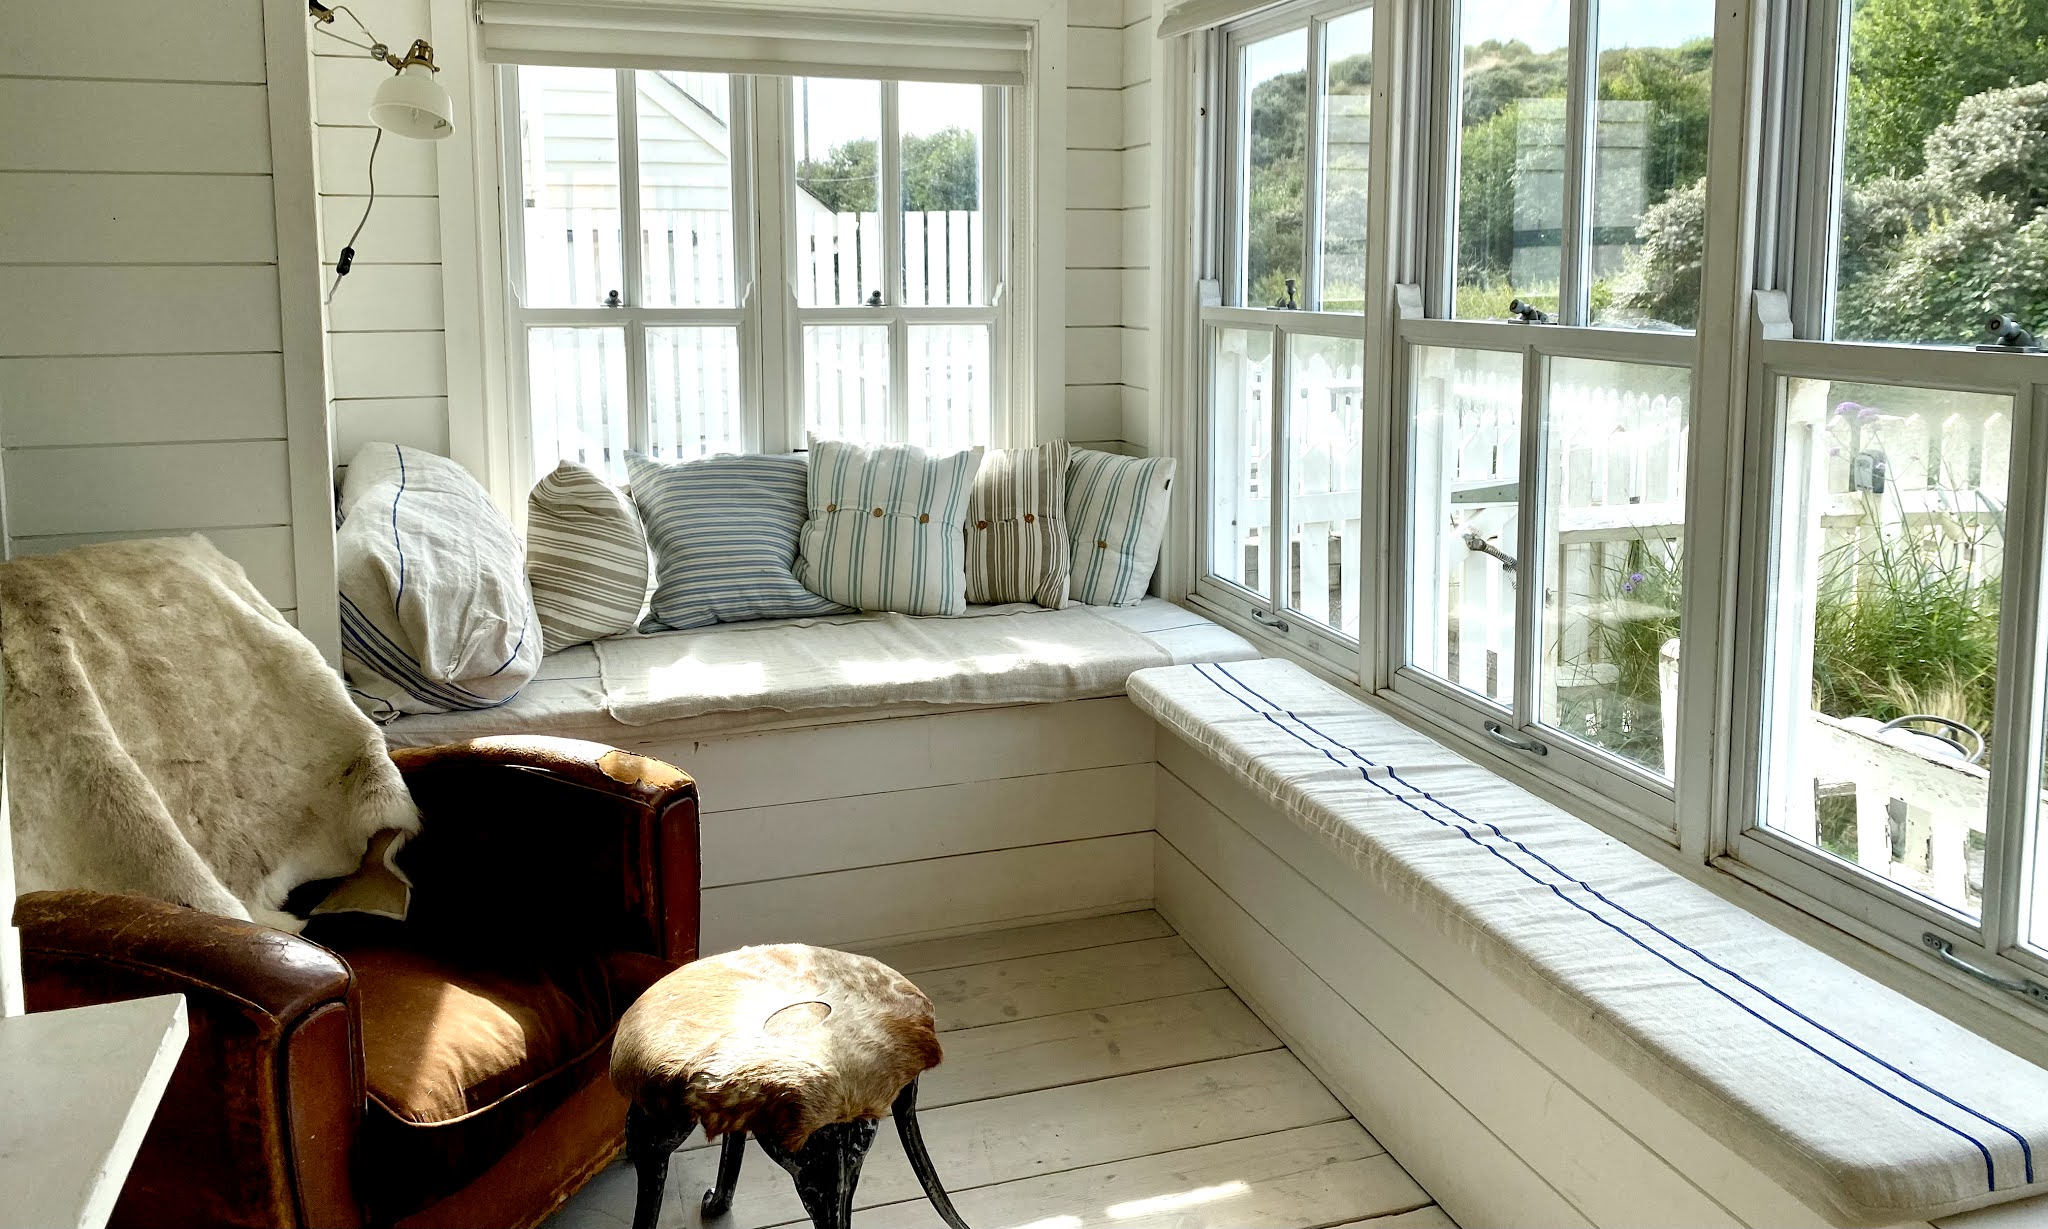 A front room with lots of windows cushions and white